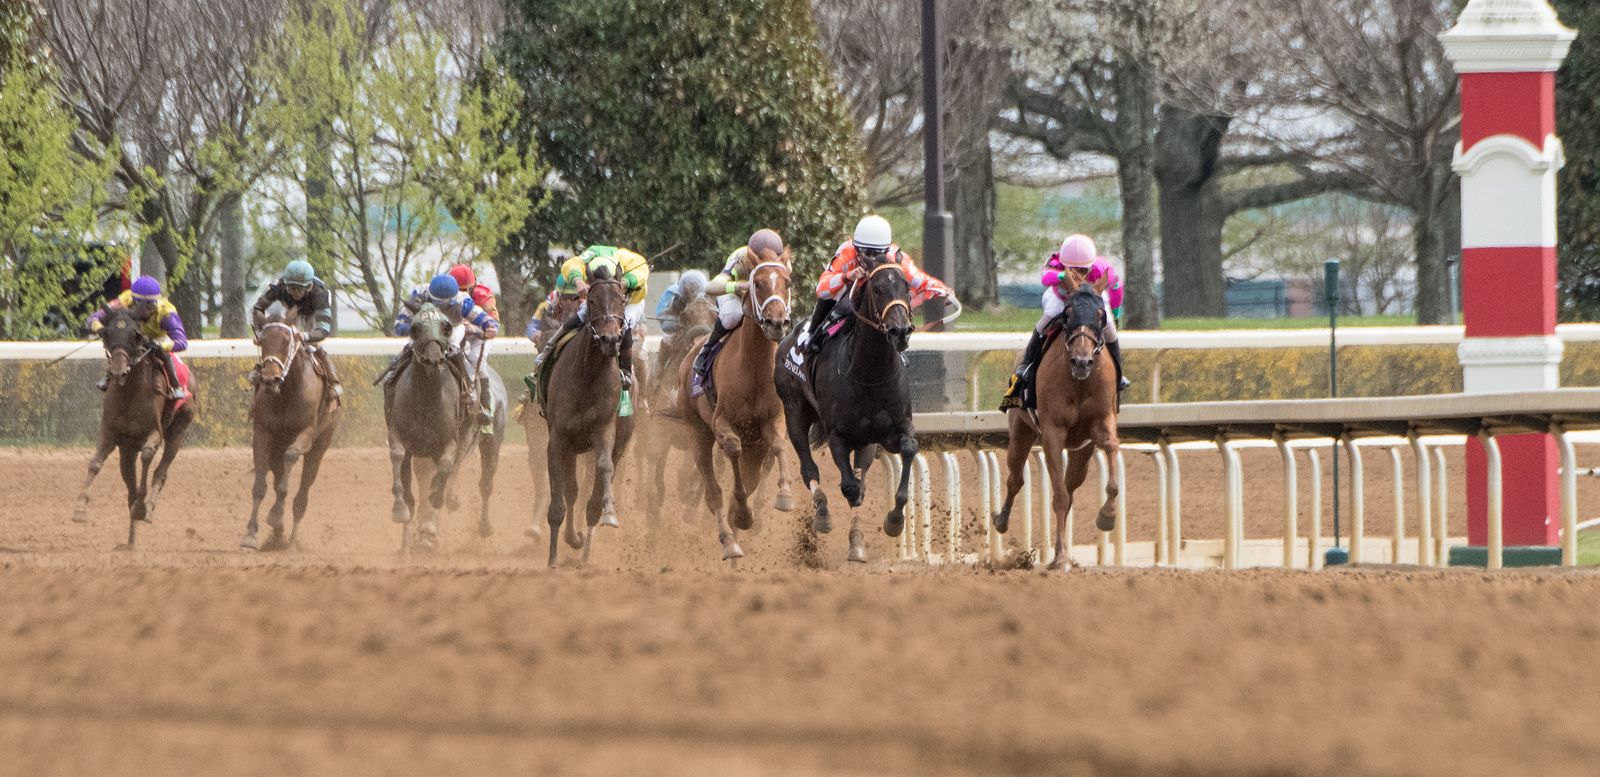 With the Breeder's Cup Championships fast approaching, G1 races are scarce.  So this week I found a race that offers a huge field and the chance for long odds.